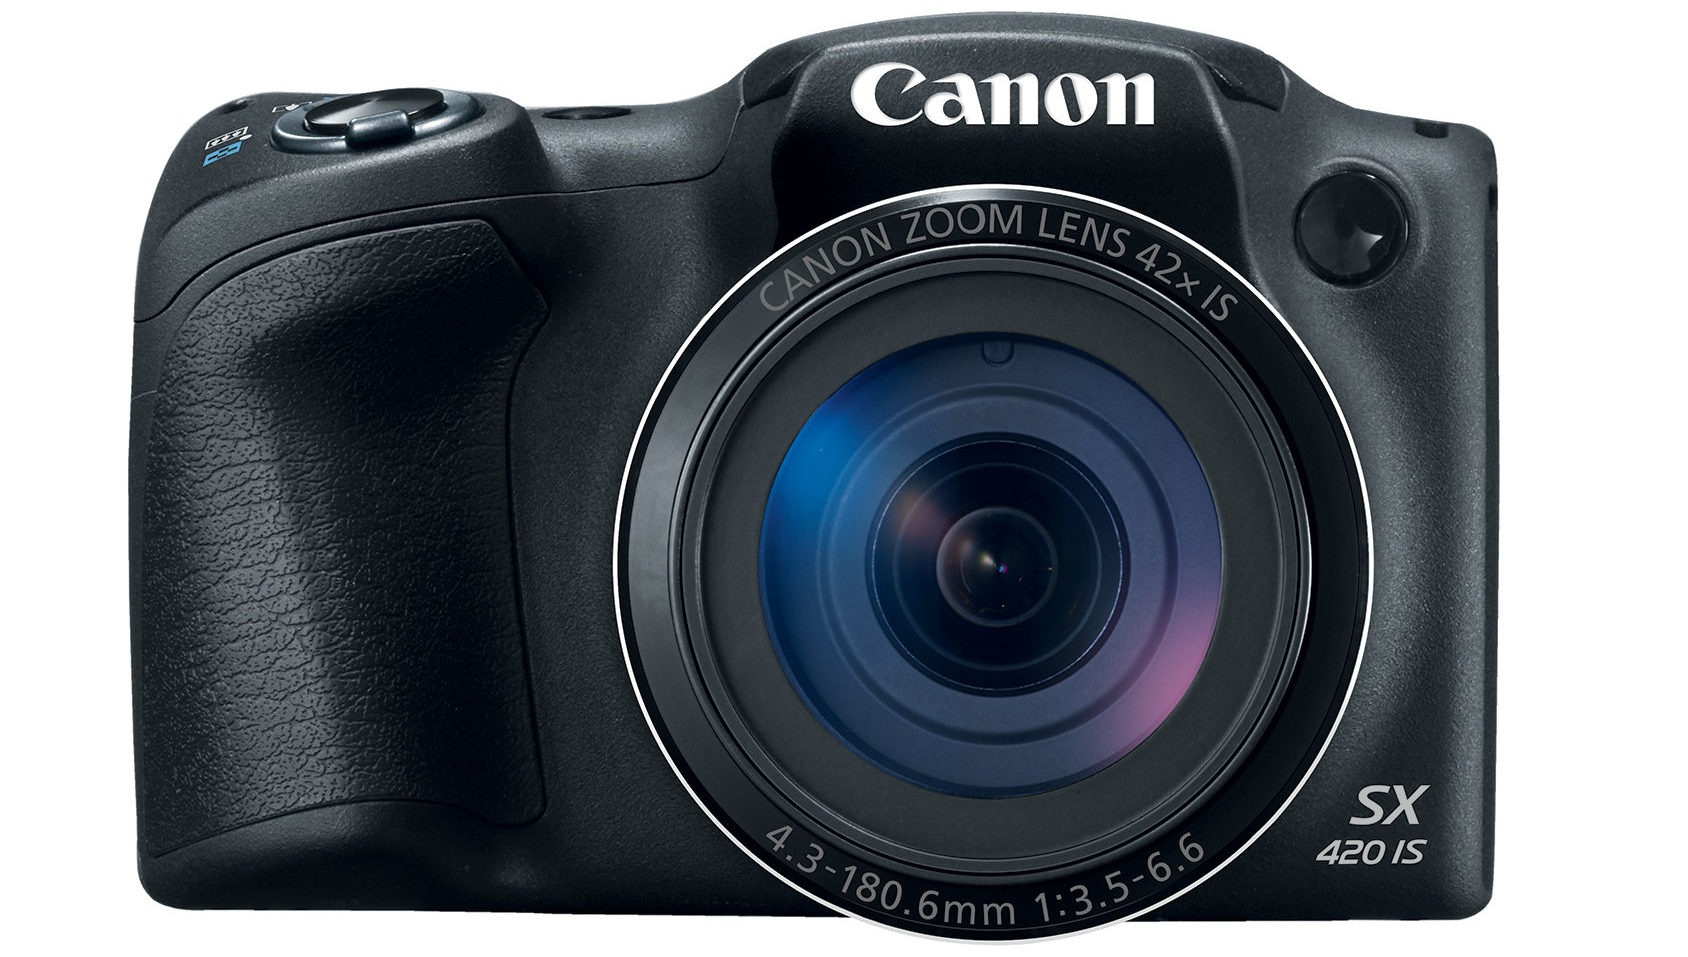 Canon PowerShot SX420 IS | $299.99